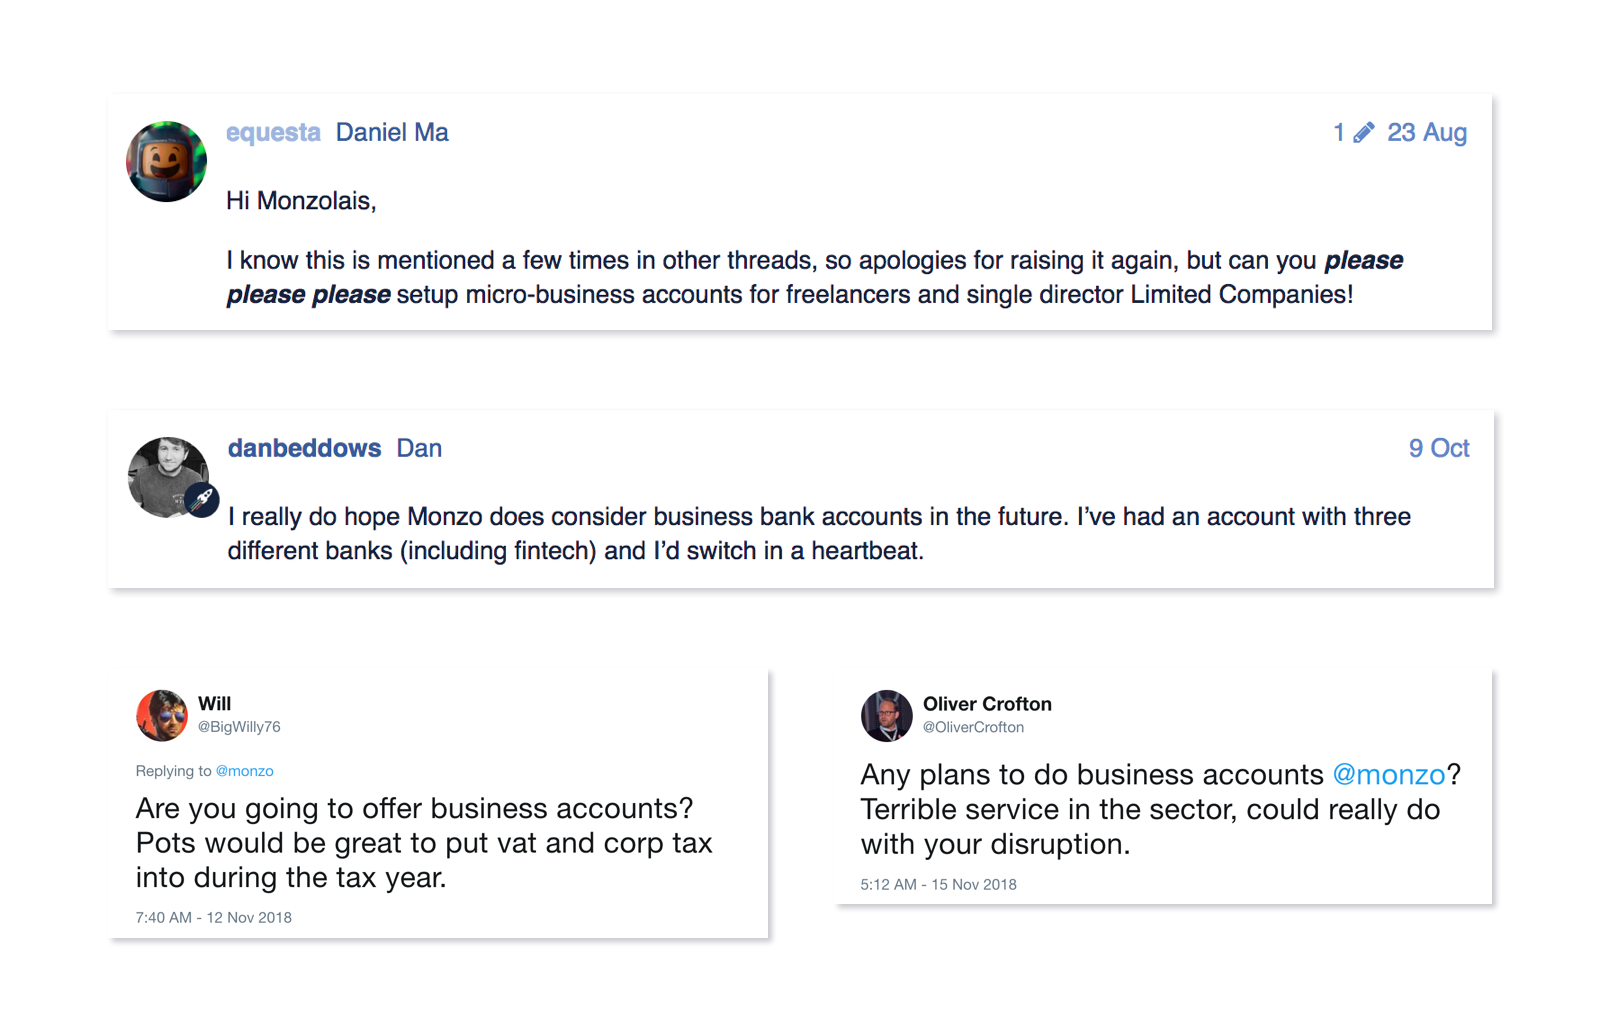 Community forum comments asking if Monzo is going to do business accounts